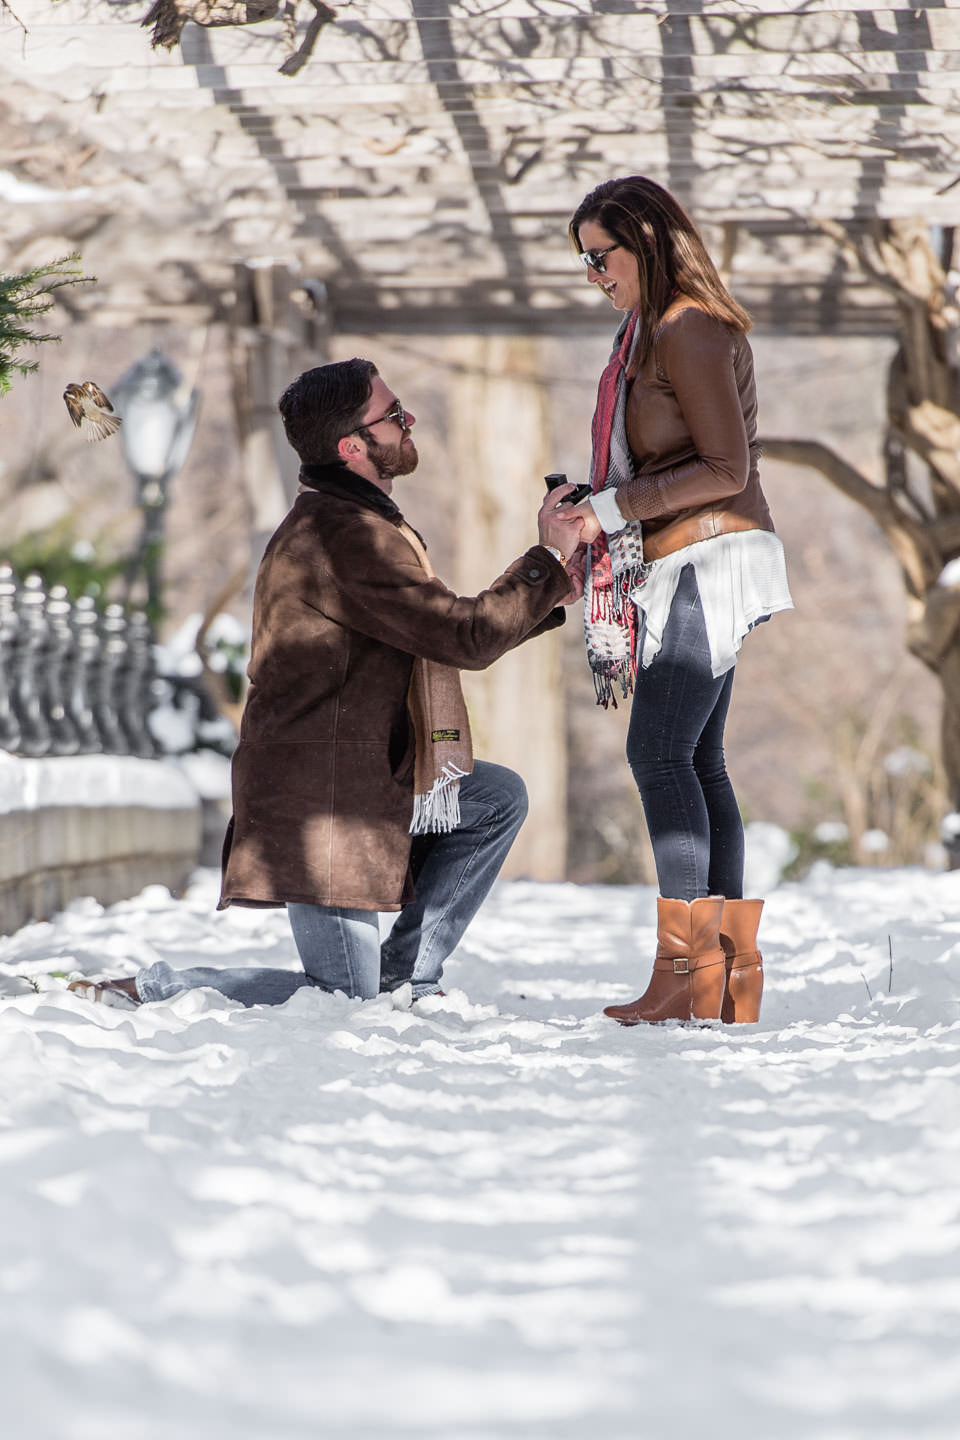 winter proposal in central park with snow guy is on one knee asking for marriage